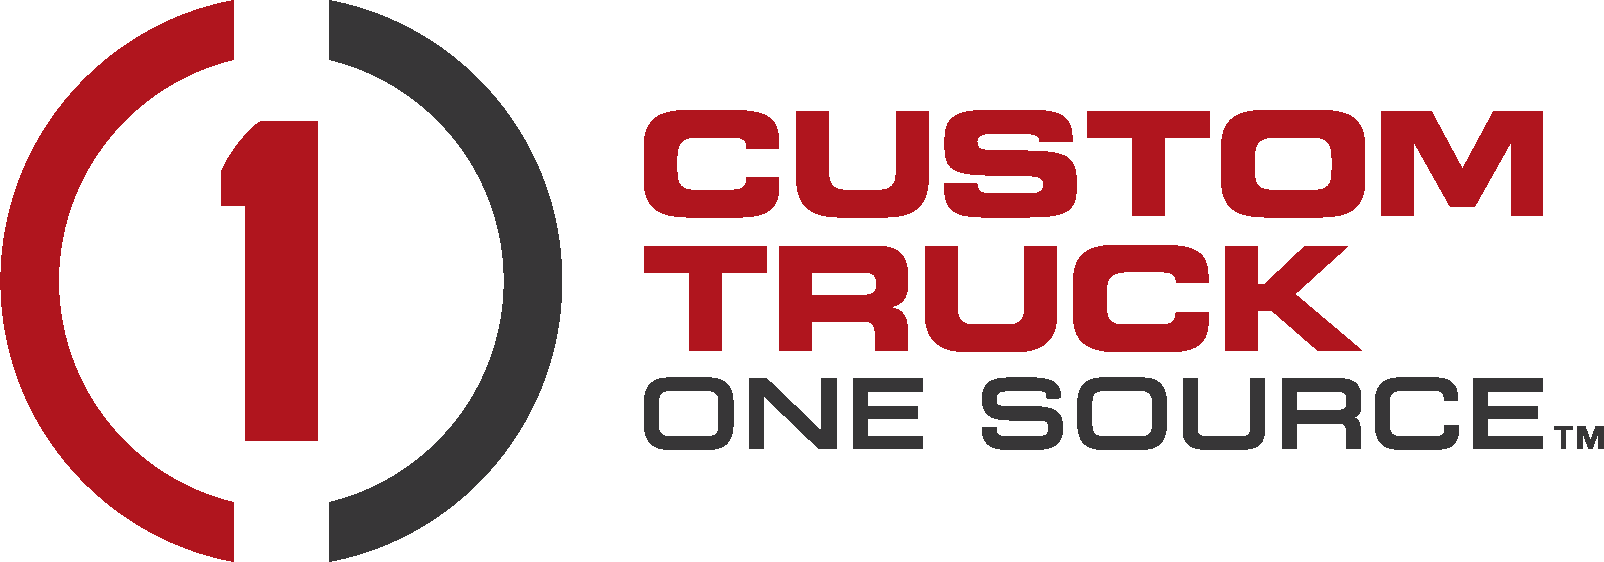 Custom Truck One Source Named 11th Largest Privately Held Company in Kansas City